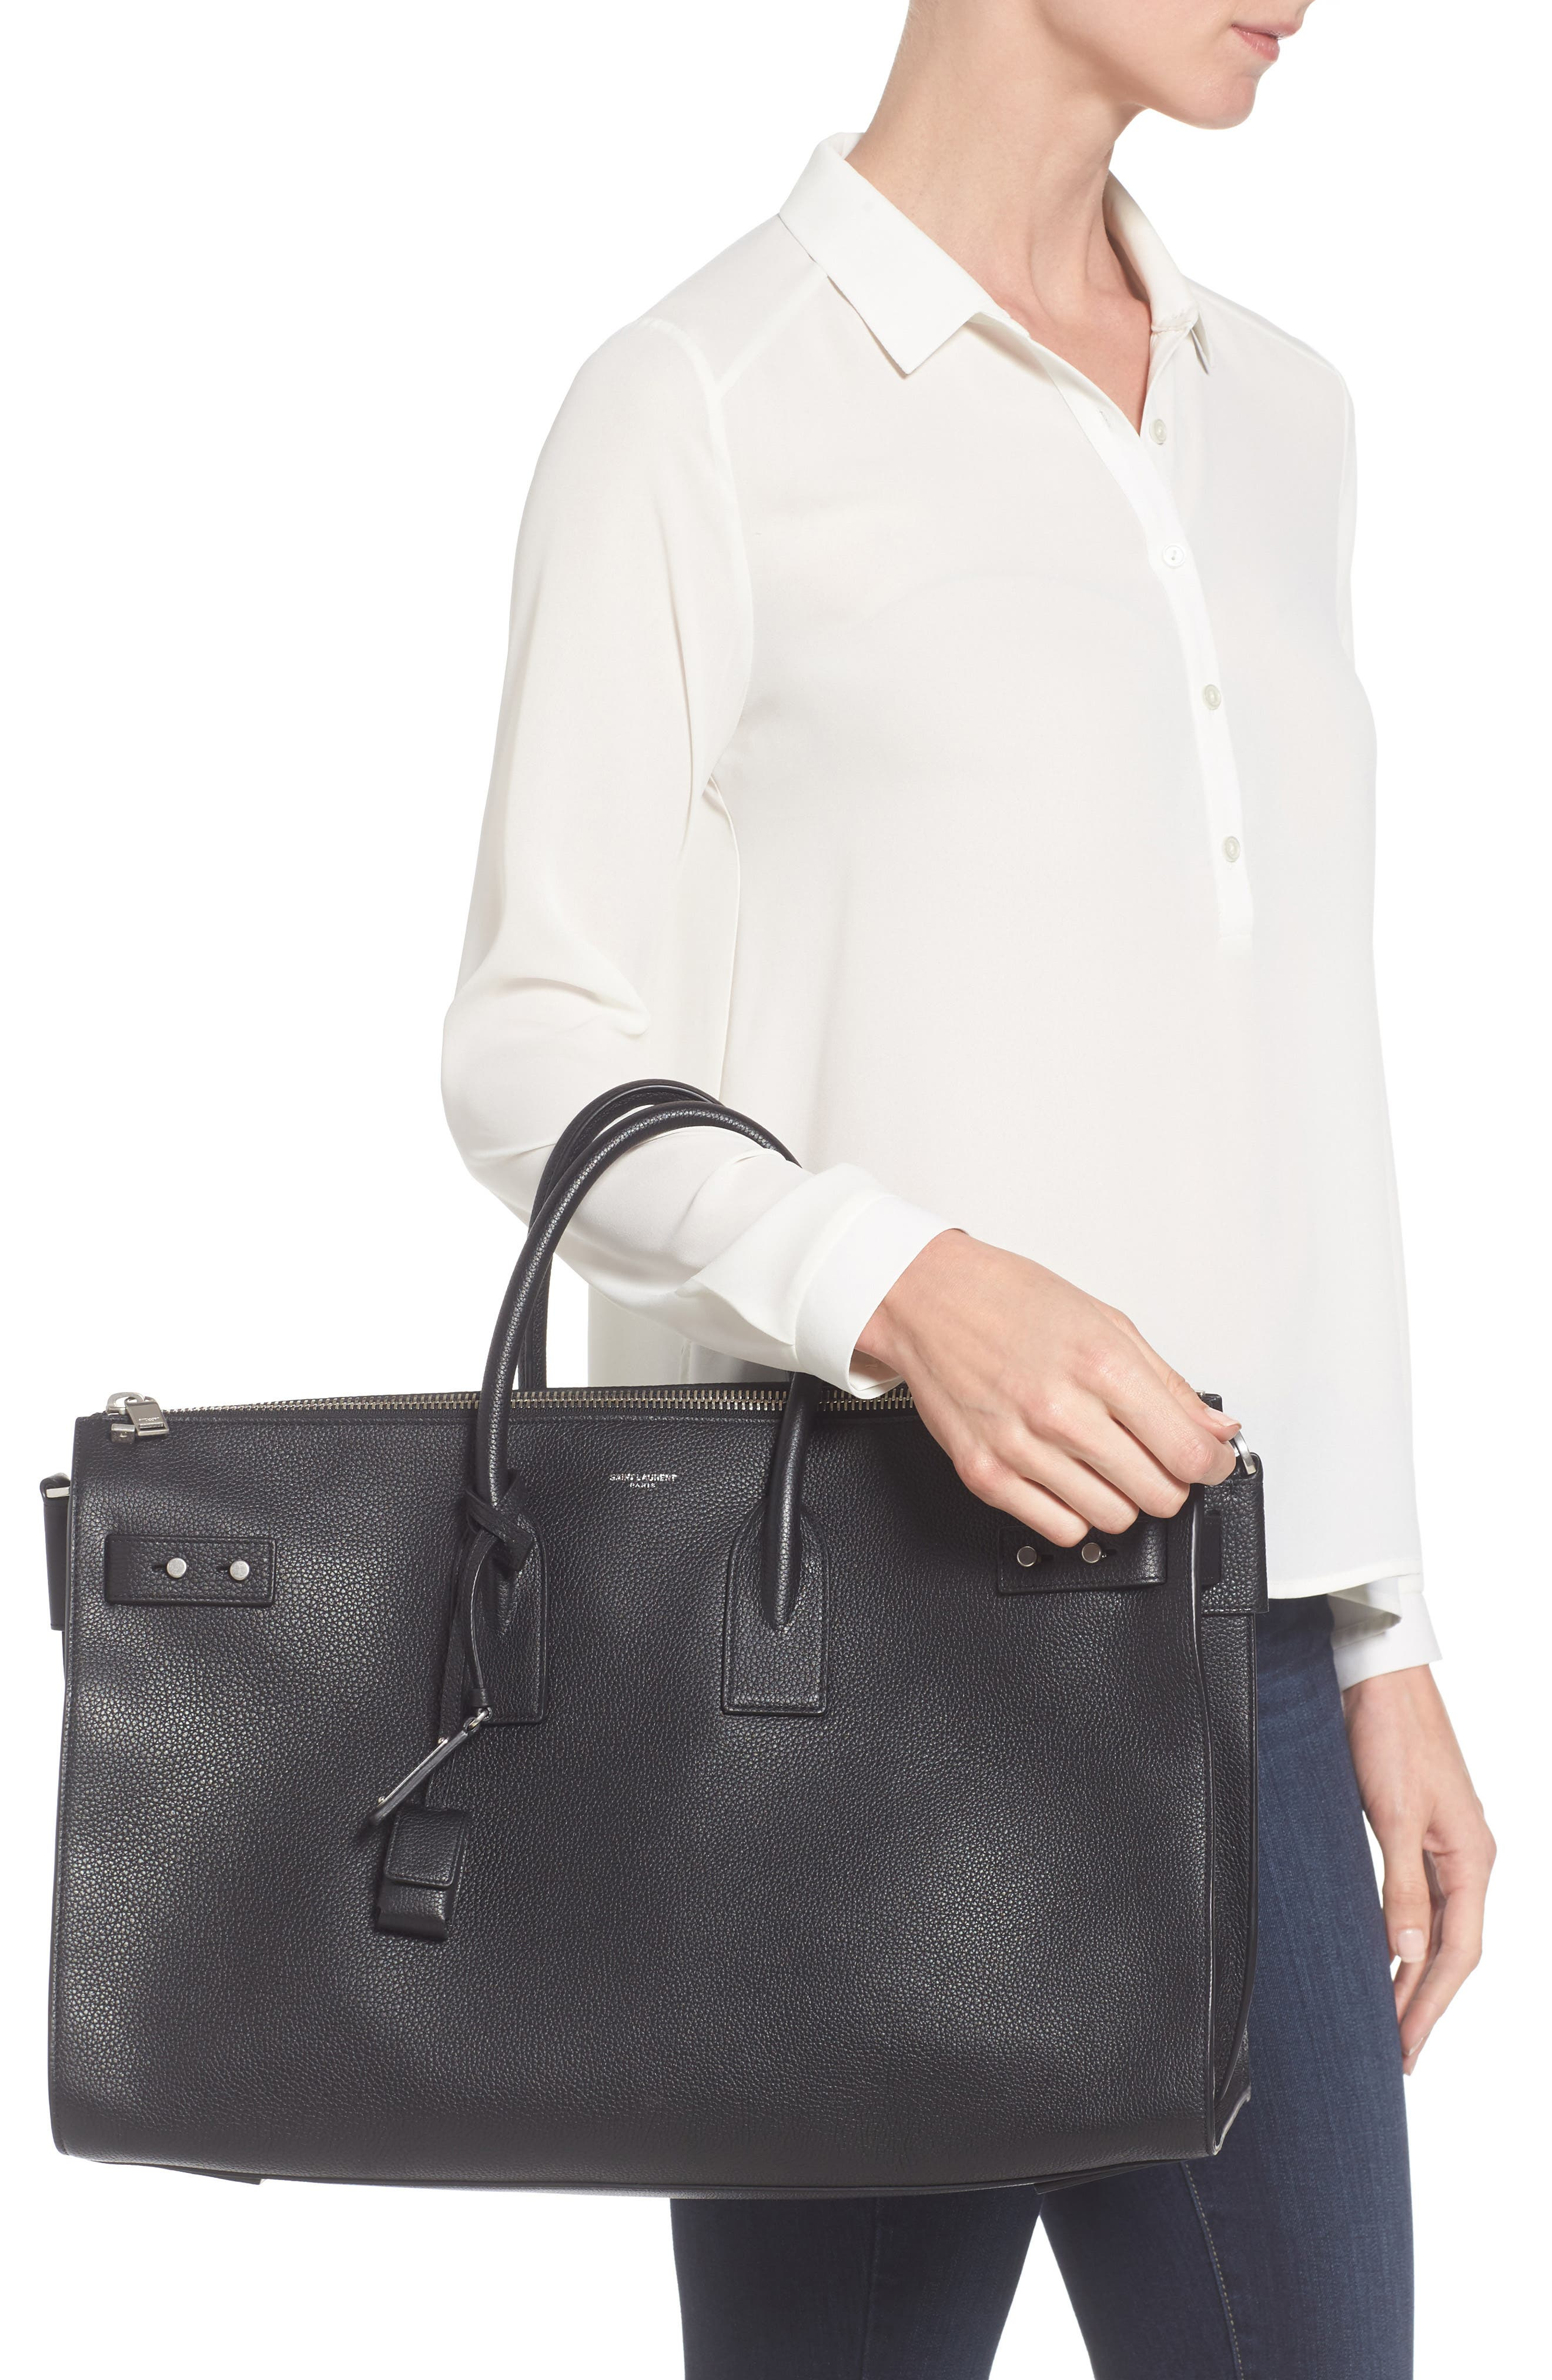 67df6a785847 $3,000 – $5,000 Handbags & Wallets for Women | Nordstrom